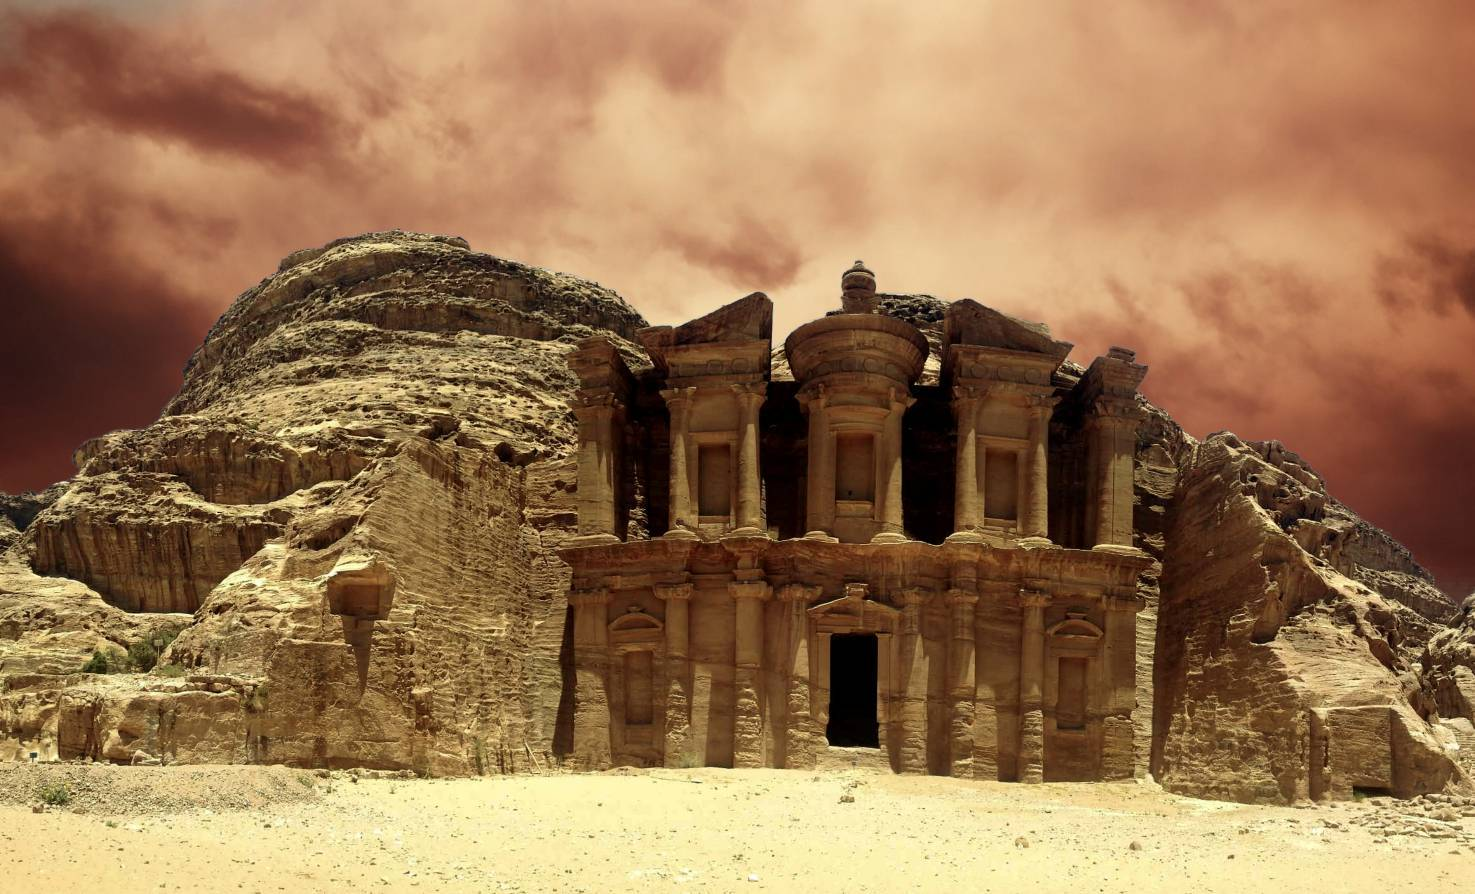 16 ancient cities and settlements that were mysteriously abandoned 19